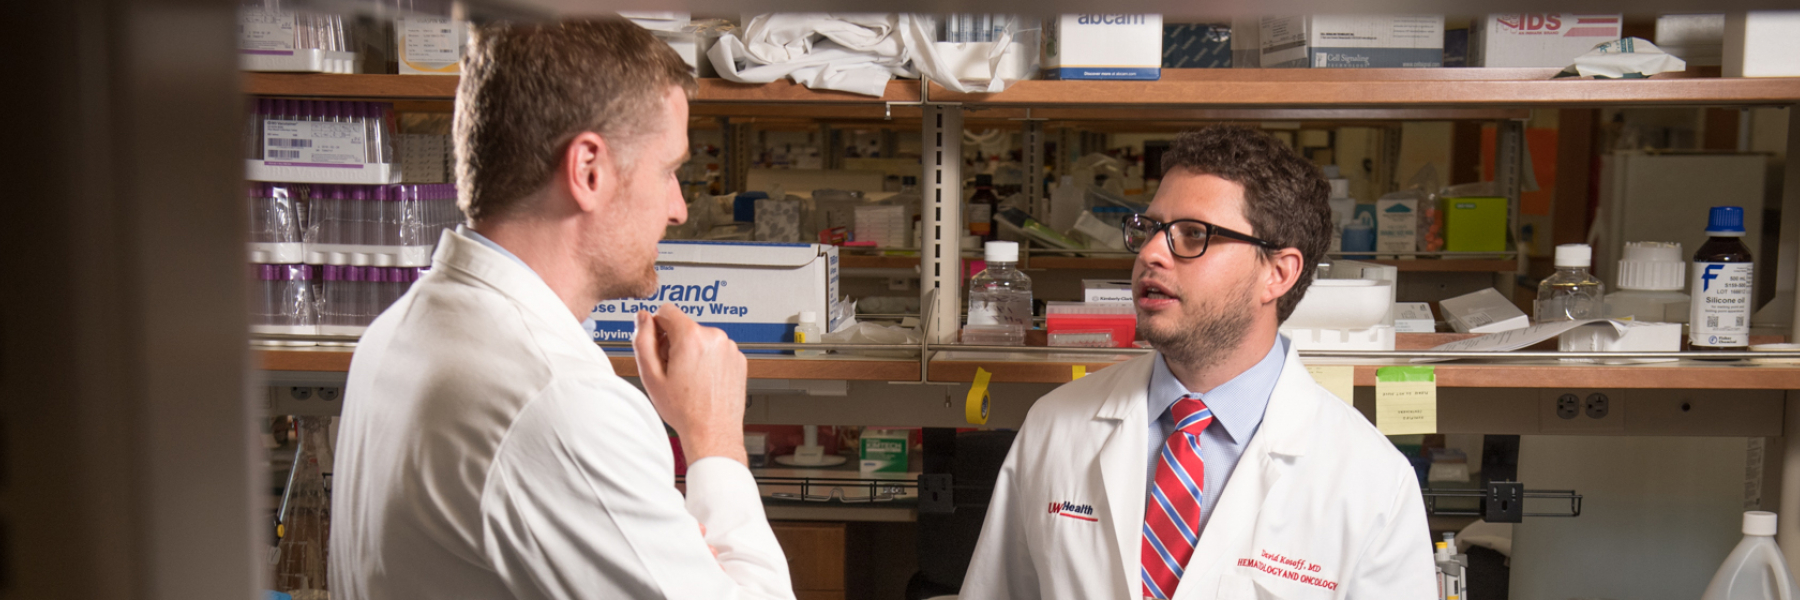 How to Apply to the Hematology/Oncology Fellowship Program